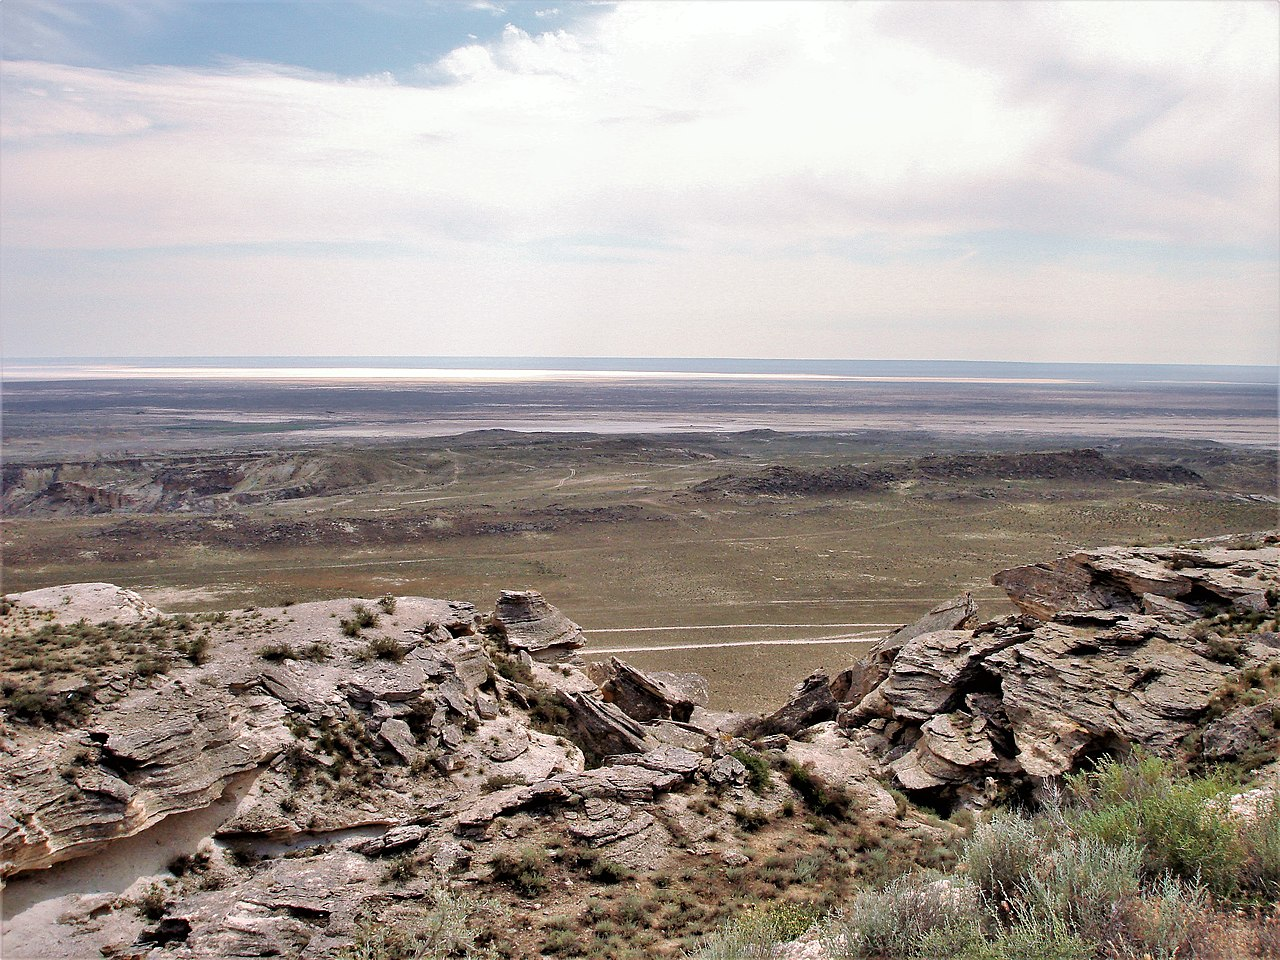 https://upload.wikimedia.org/wikipedia/commons/thumb/d/df/View_of_Karagiye_Depression.JPG/1280px-View_of_Karagiye_Depression.JPG